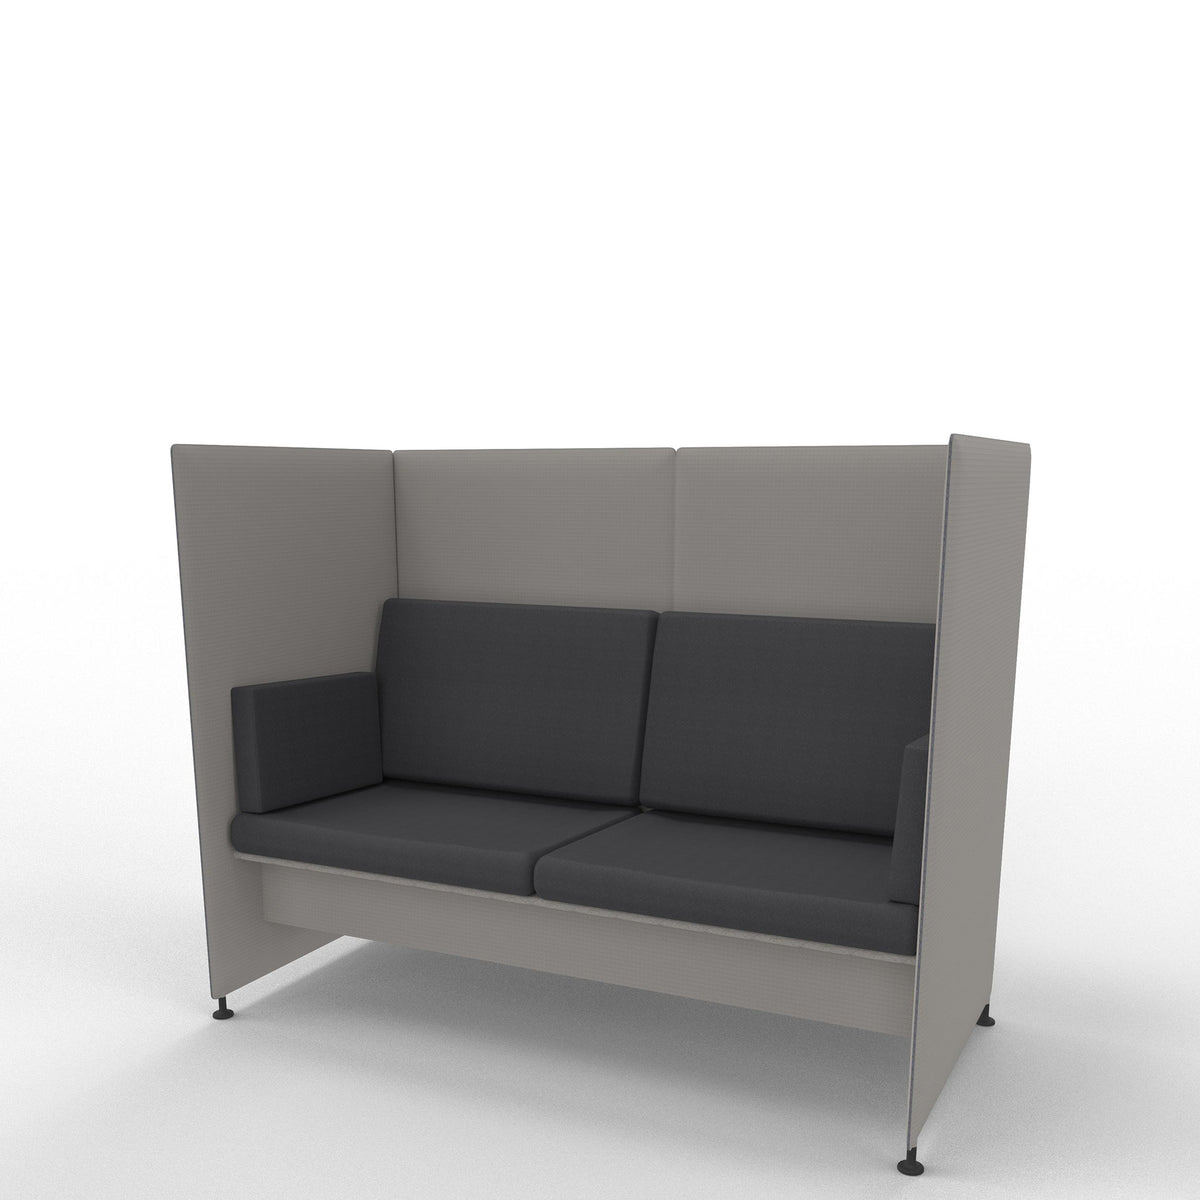 Edsbyn Ease Sofa Pod with Graphite Cushions